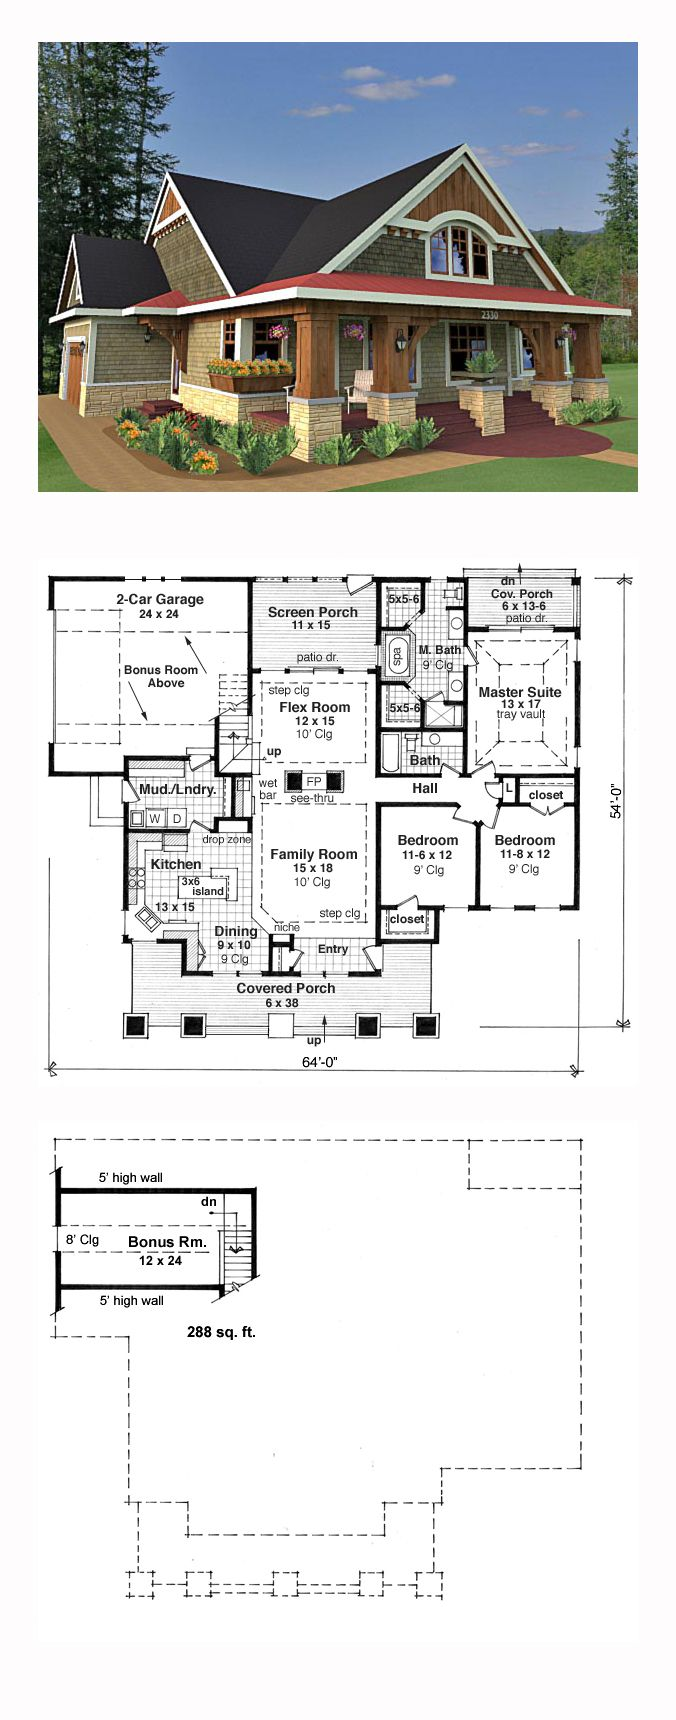 17 best bungalow house plans images on pinterest cool house bungalow style cool house plan id chp 49676 total living area 1866